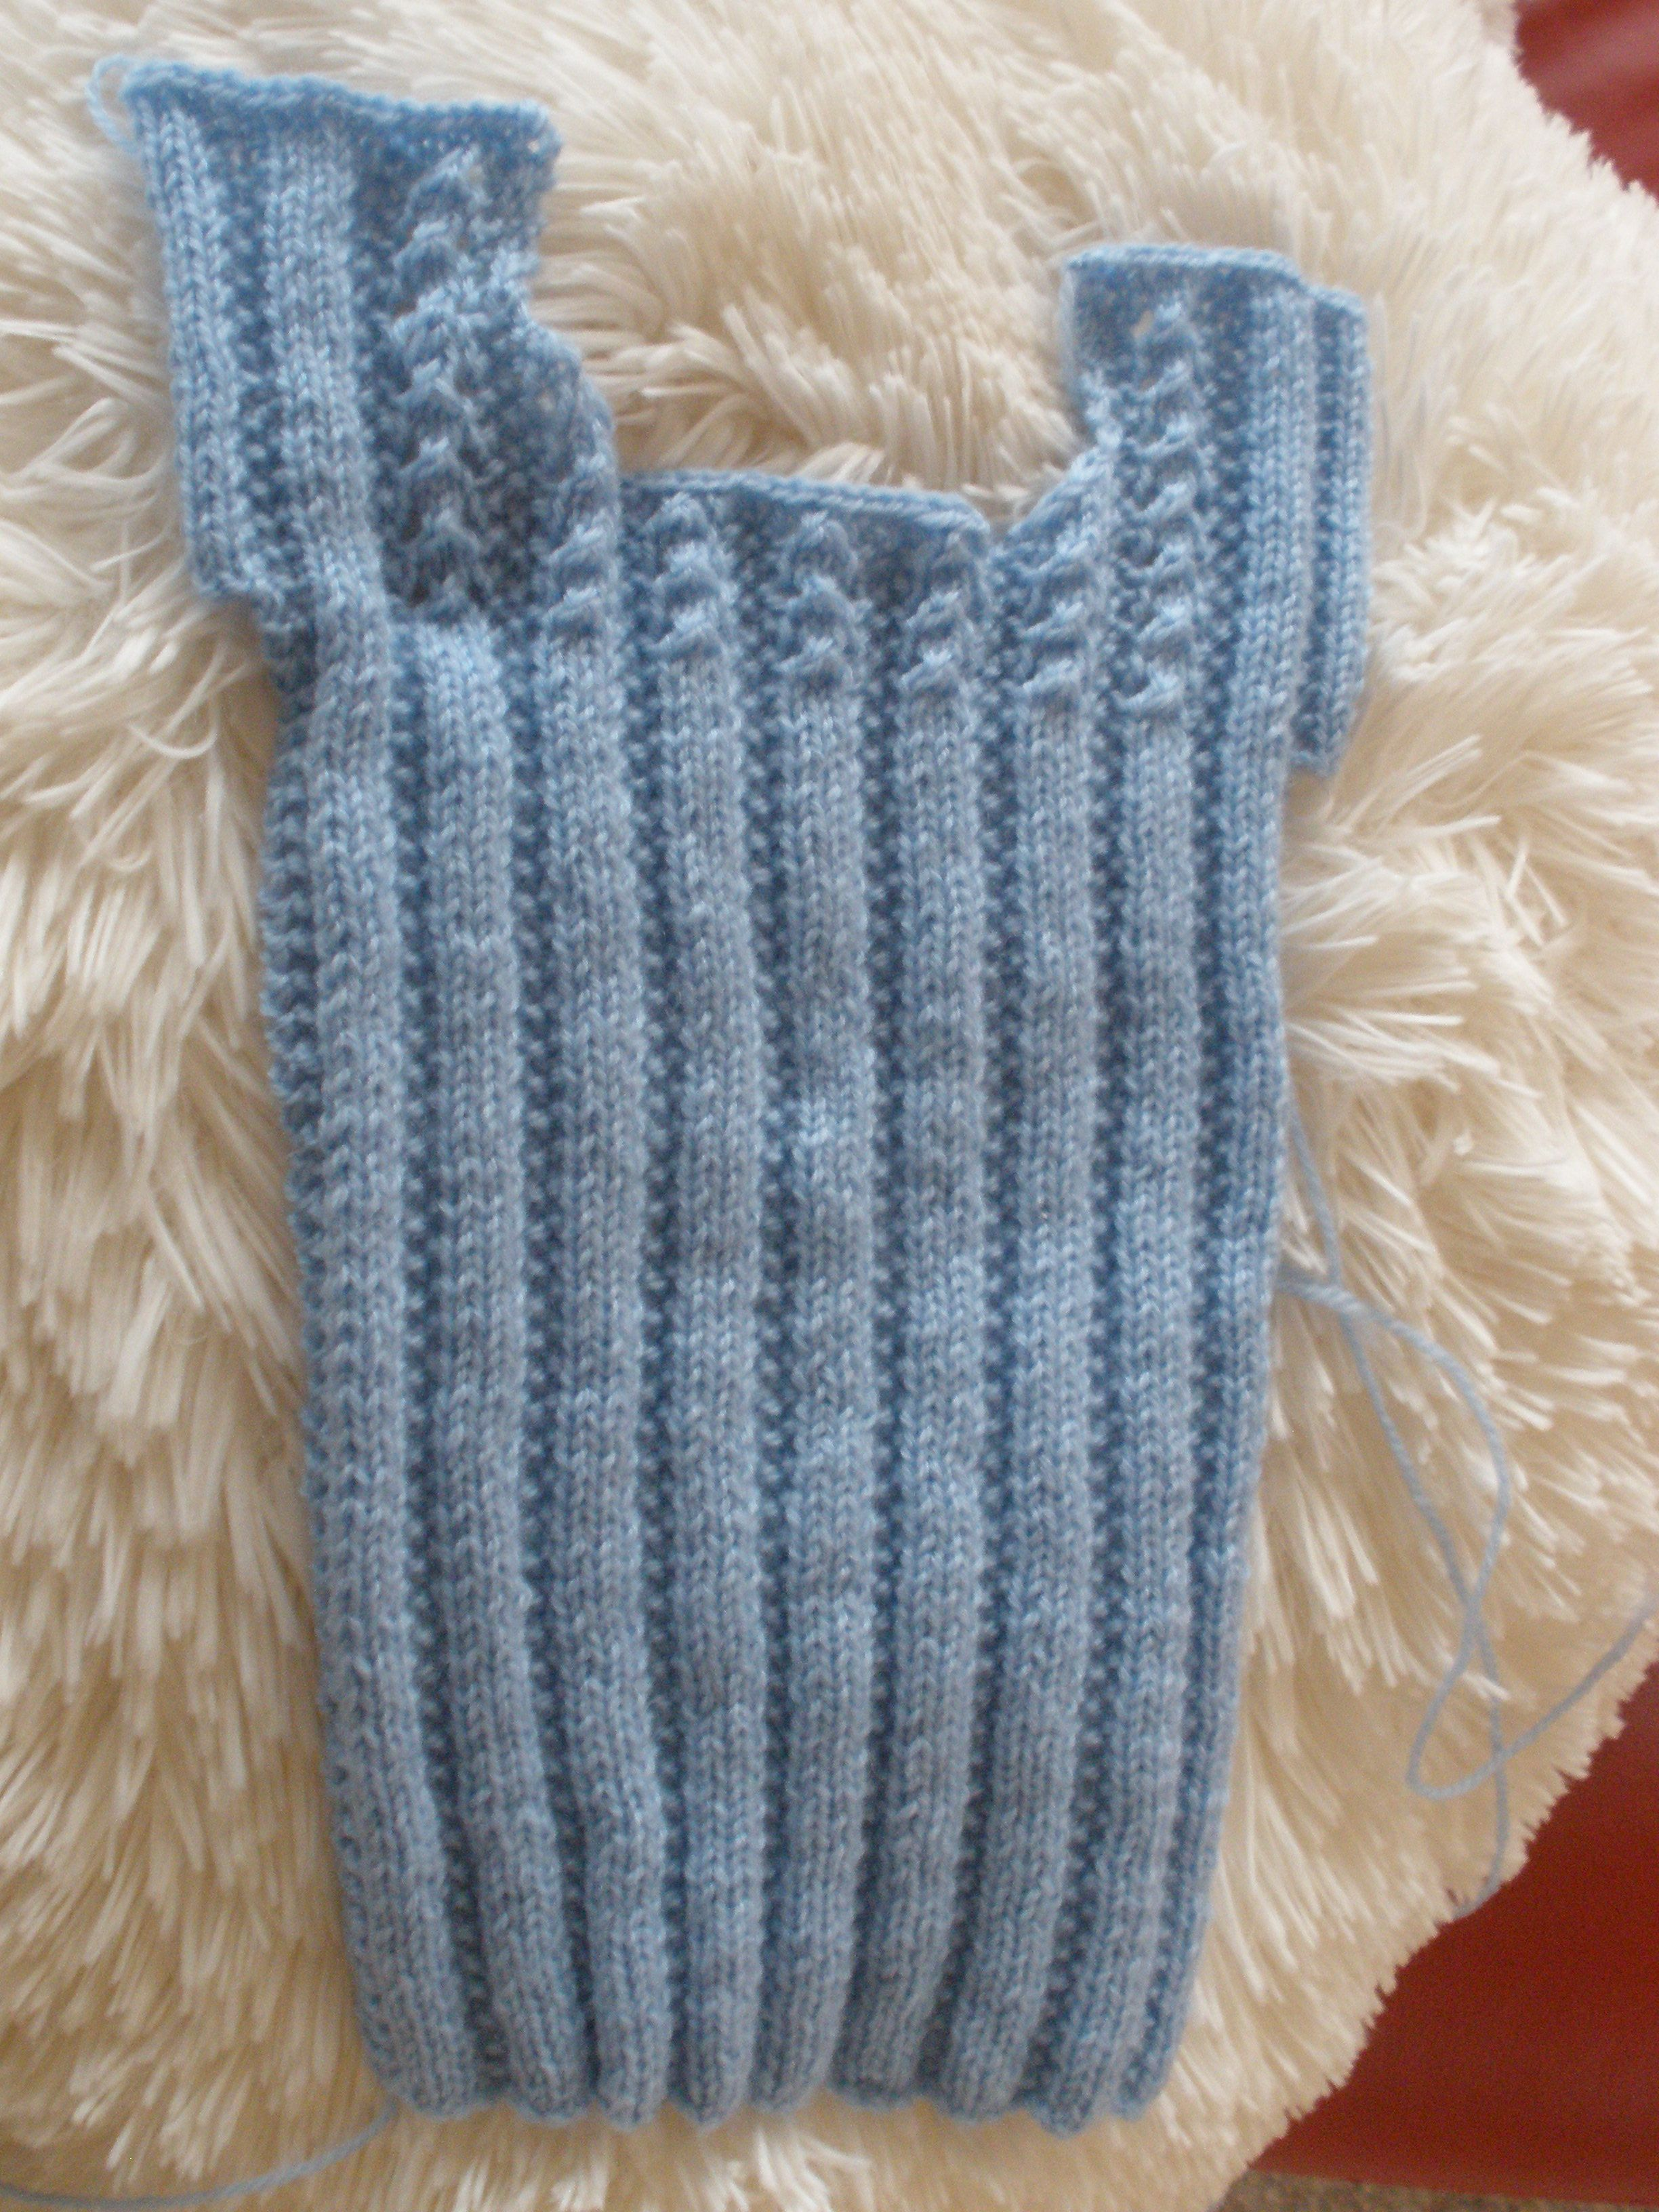 hand knitted baby singlets - Google Search | bebes | Pinterest ...